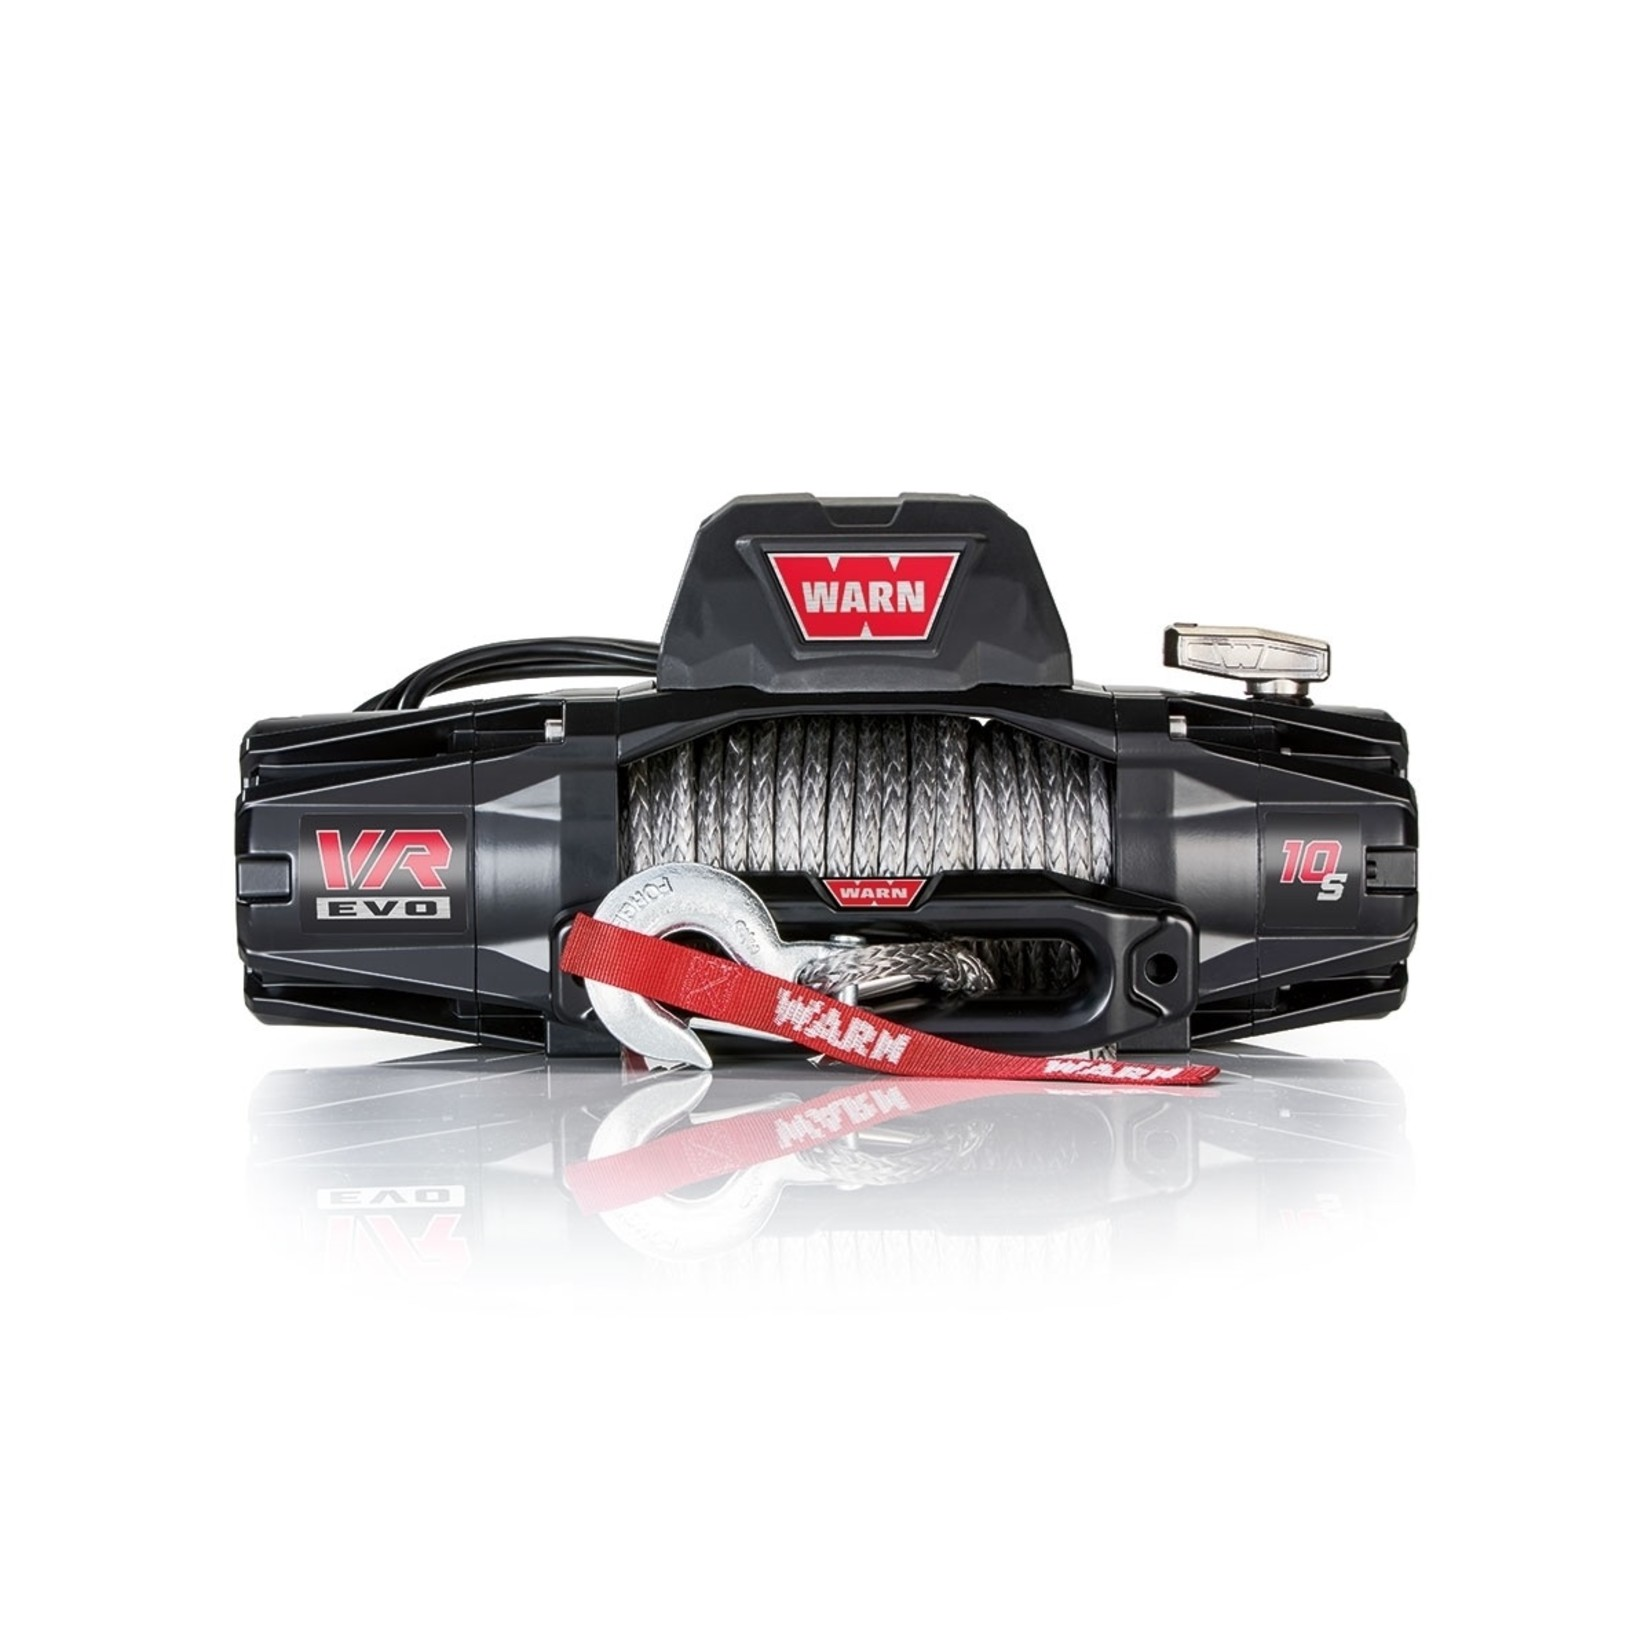 Warn VR EVO 10-S Winch w/Synthetic Rope